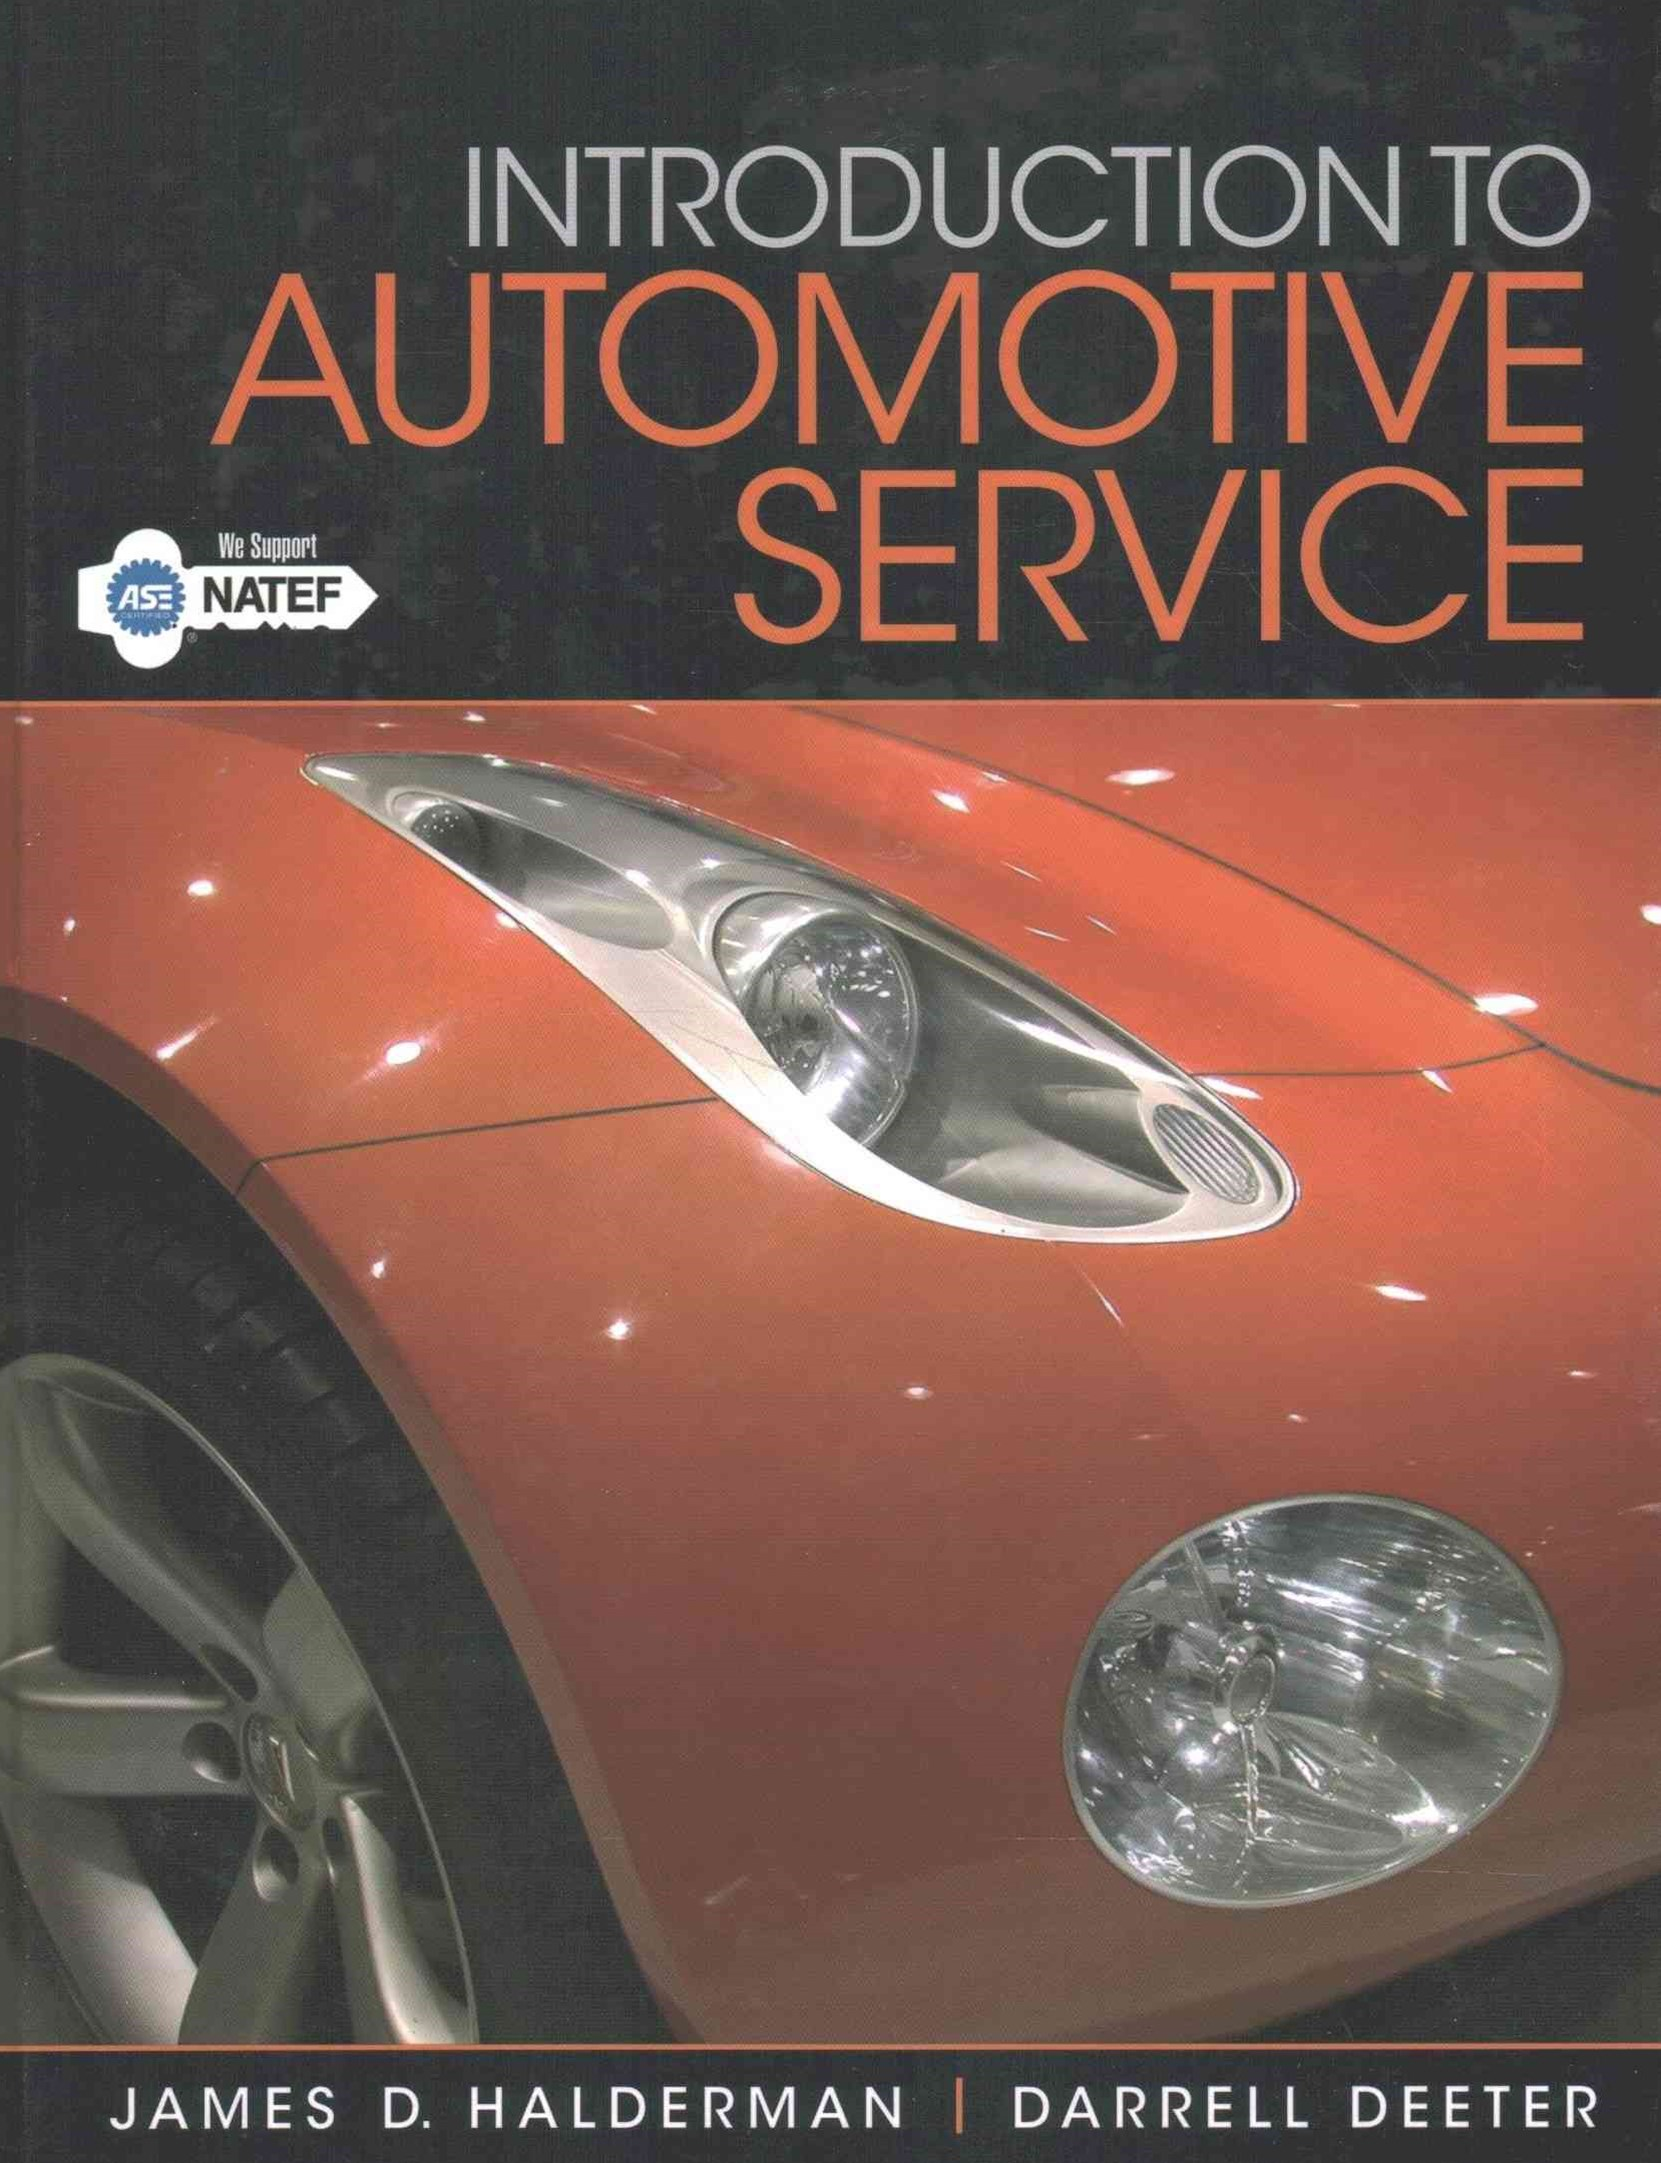 Introduction to Automotive Service&natef Pk